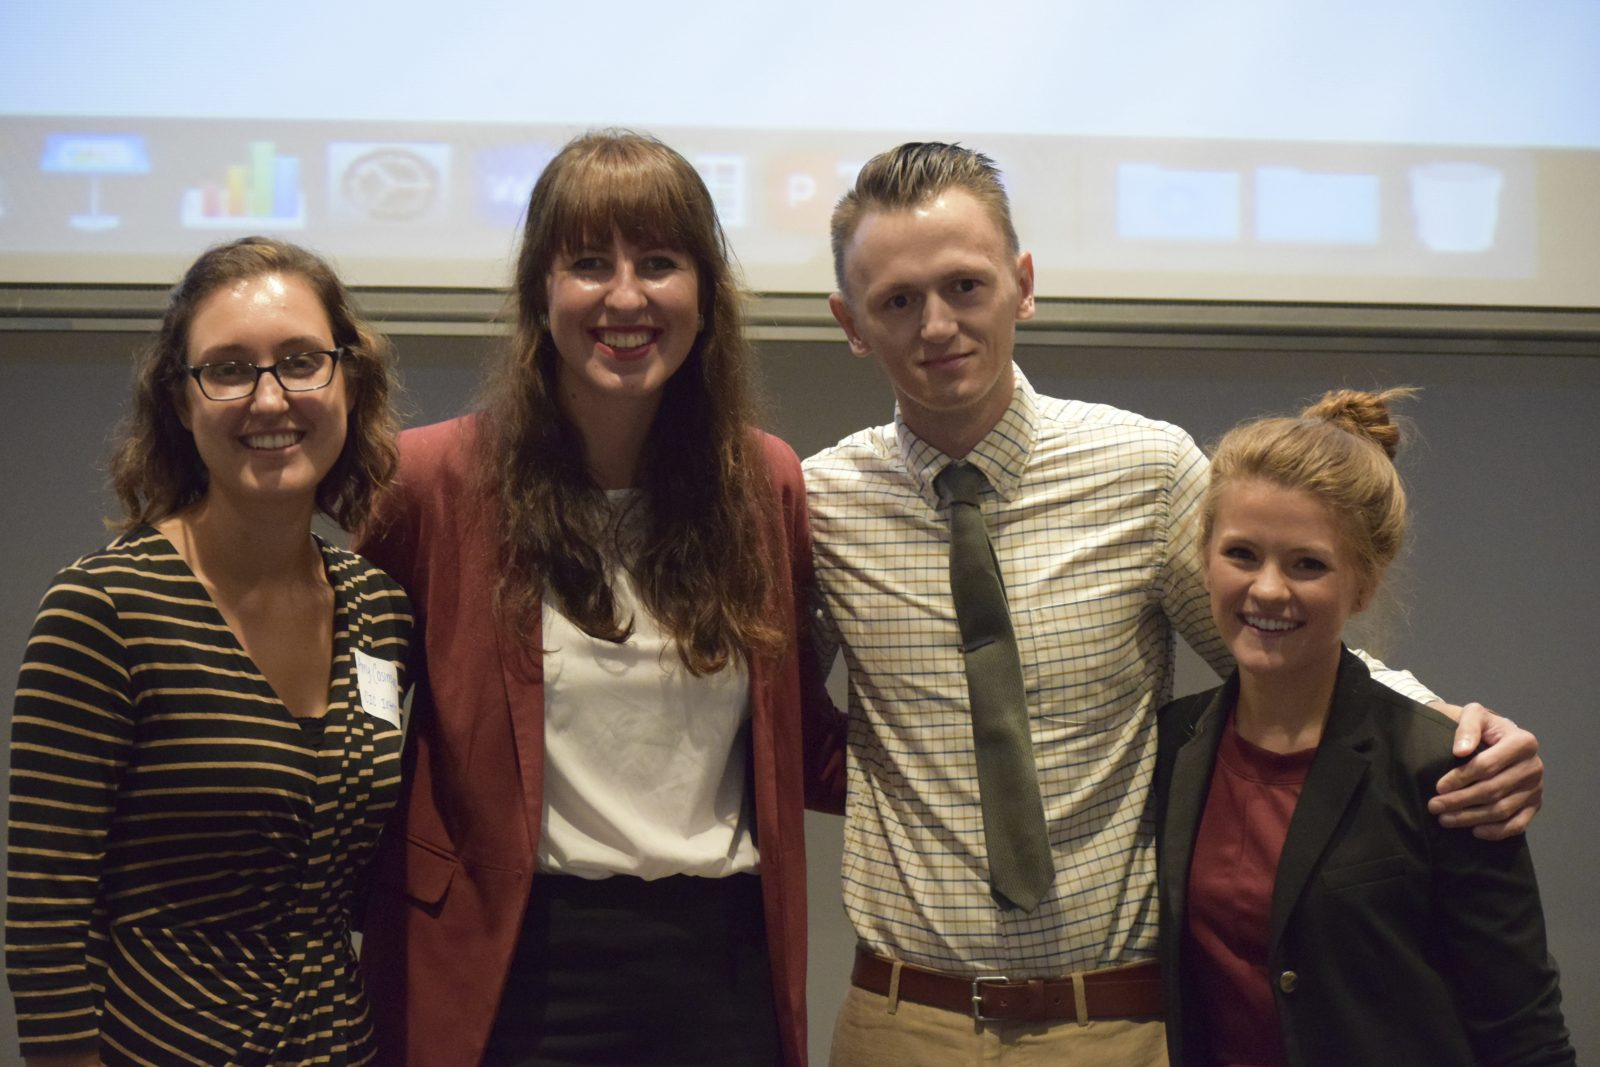 Four of the 2016 CIC interns getting ready to present at the annual CIC event. From left: AmyAmy Cosimini, Dagmara Franczak, Damir S. Utržan, Claire Hepworth